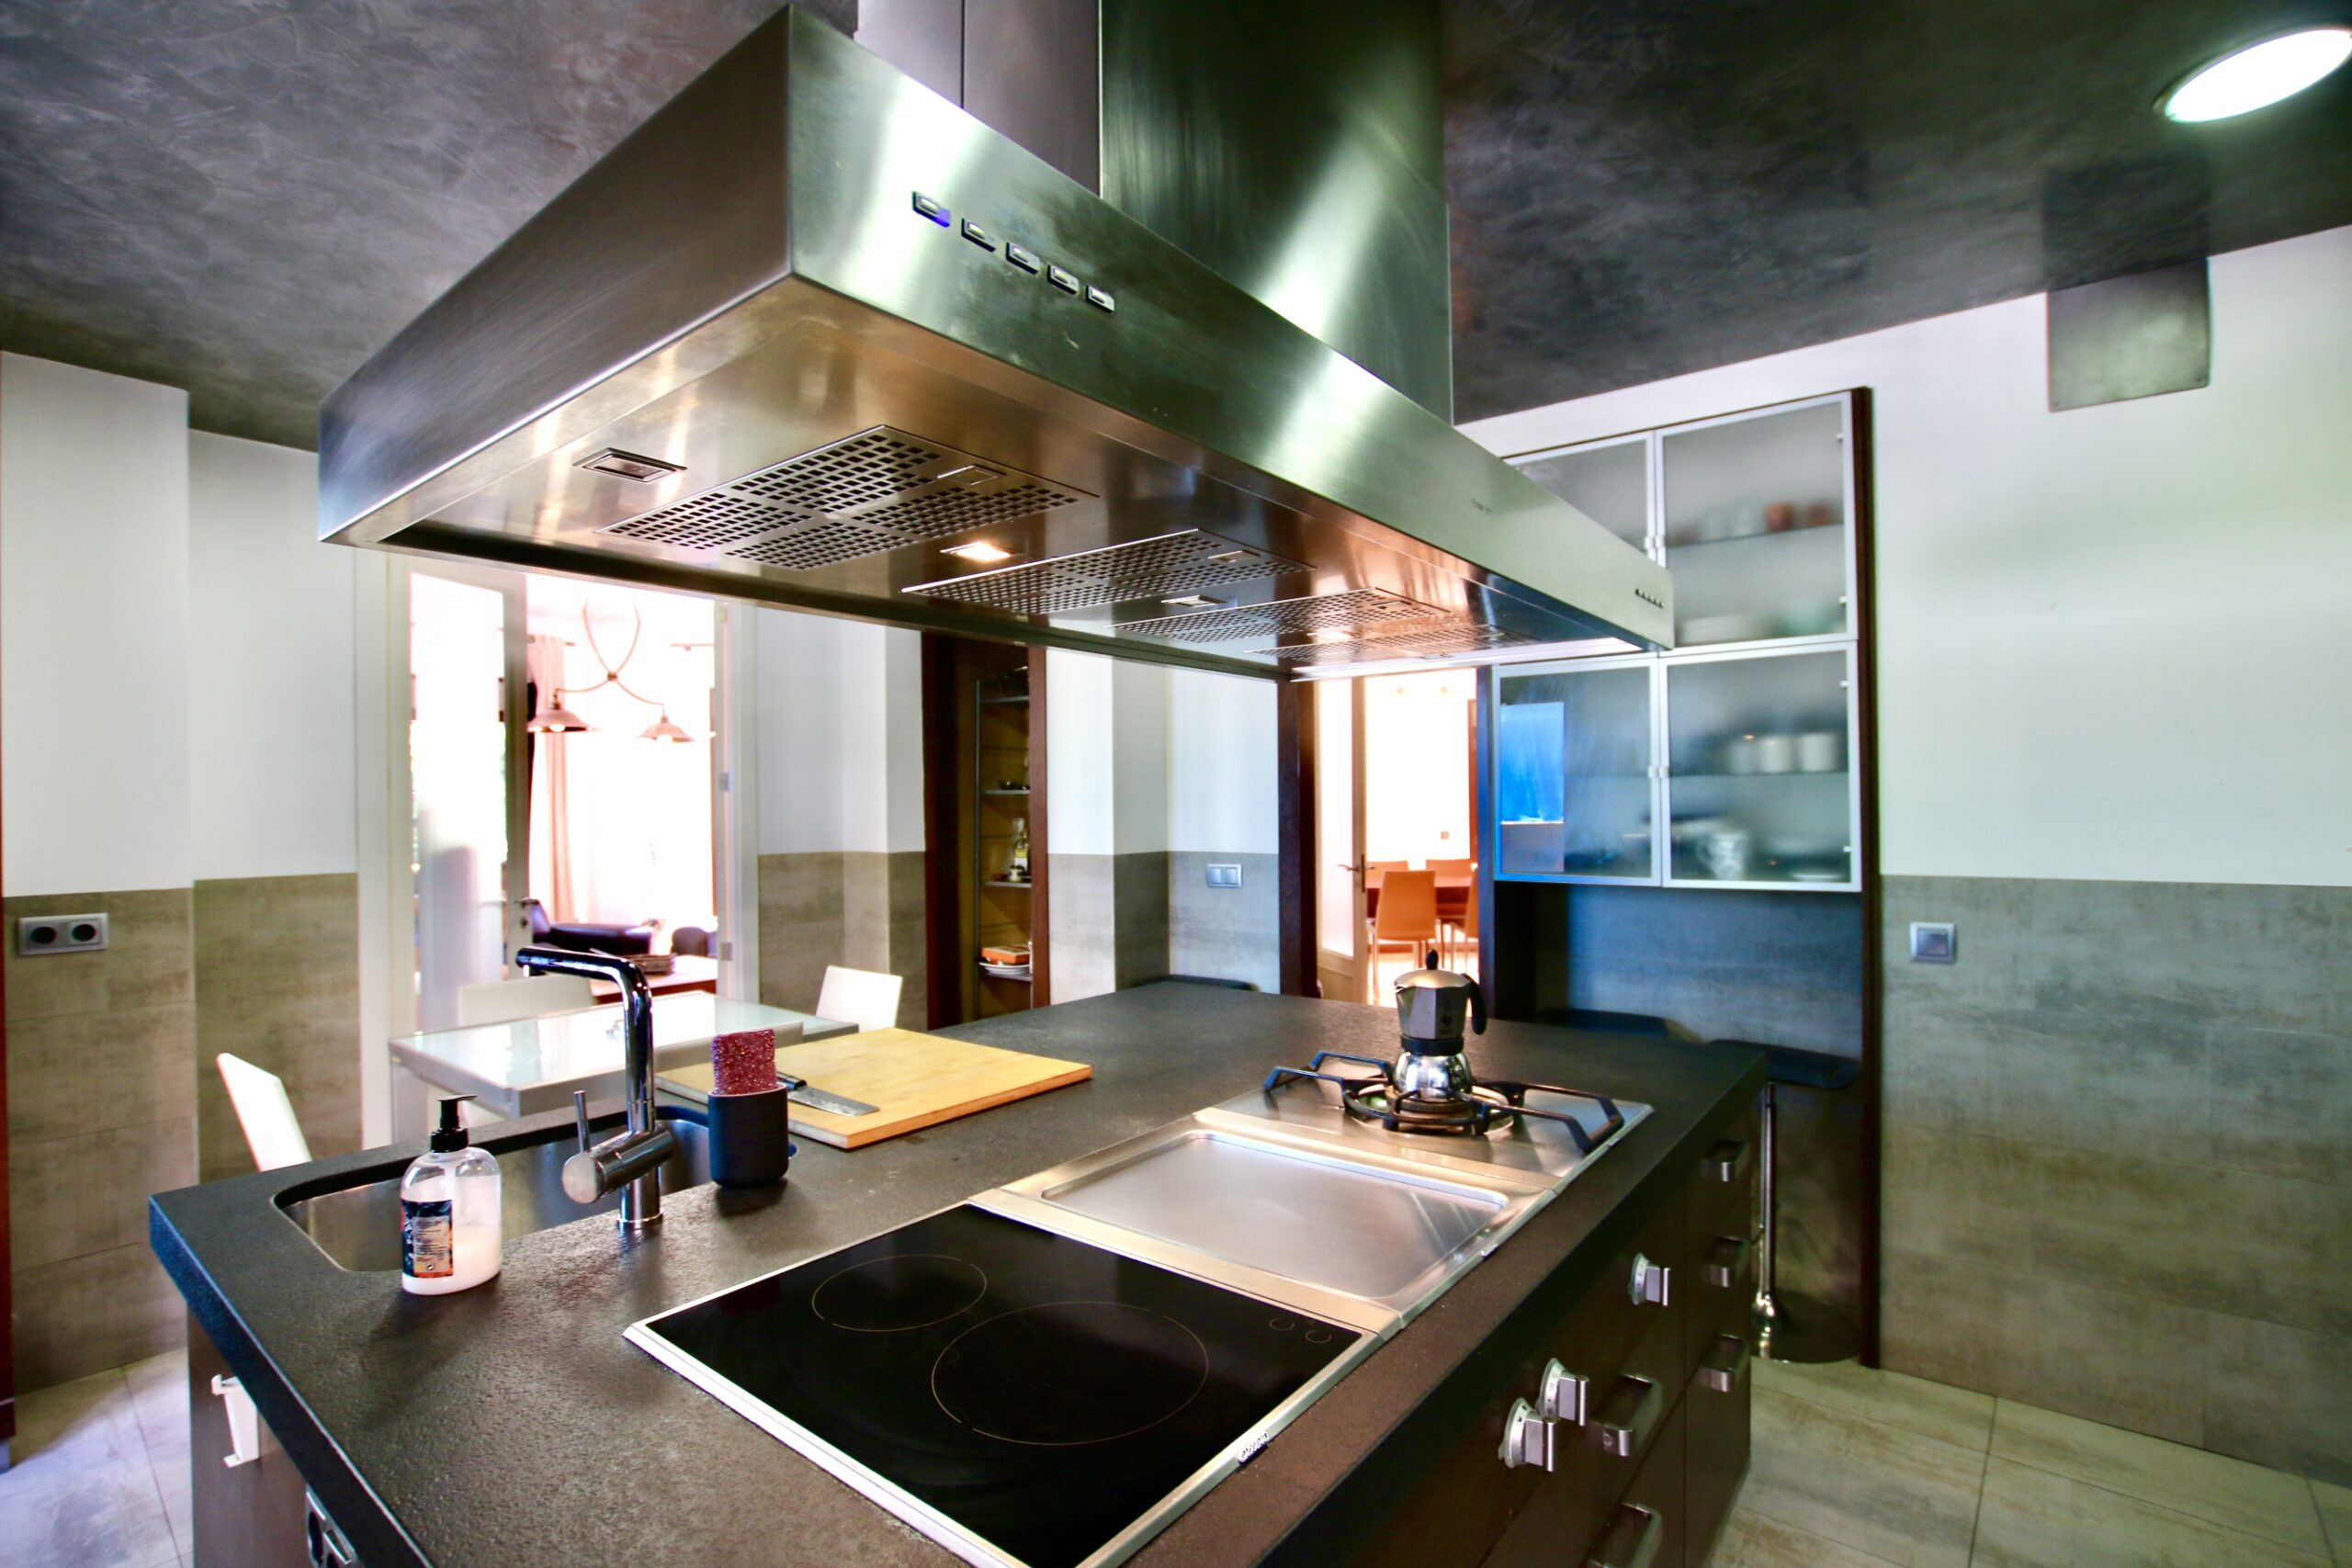 Amazing opportunity of a nice 3 bedrooms apartment @Palma